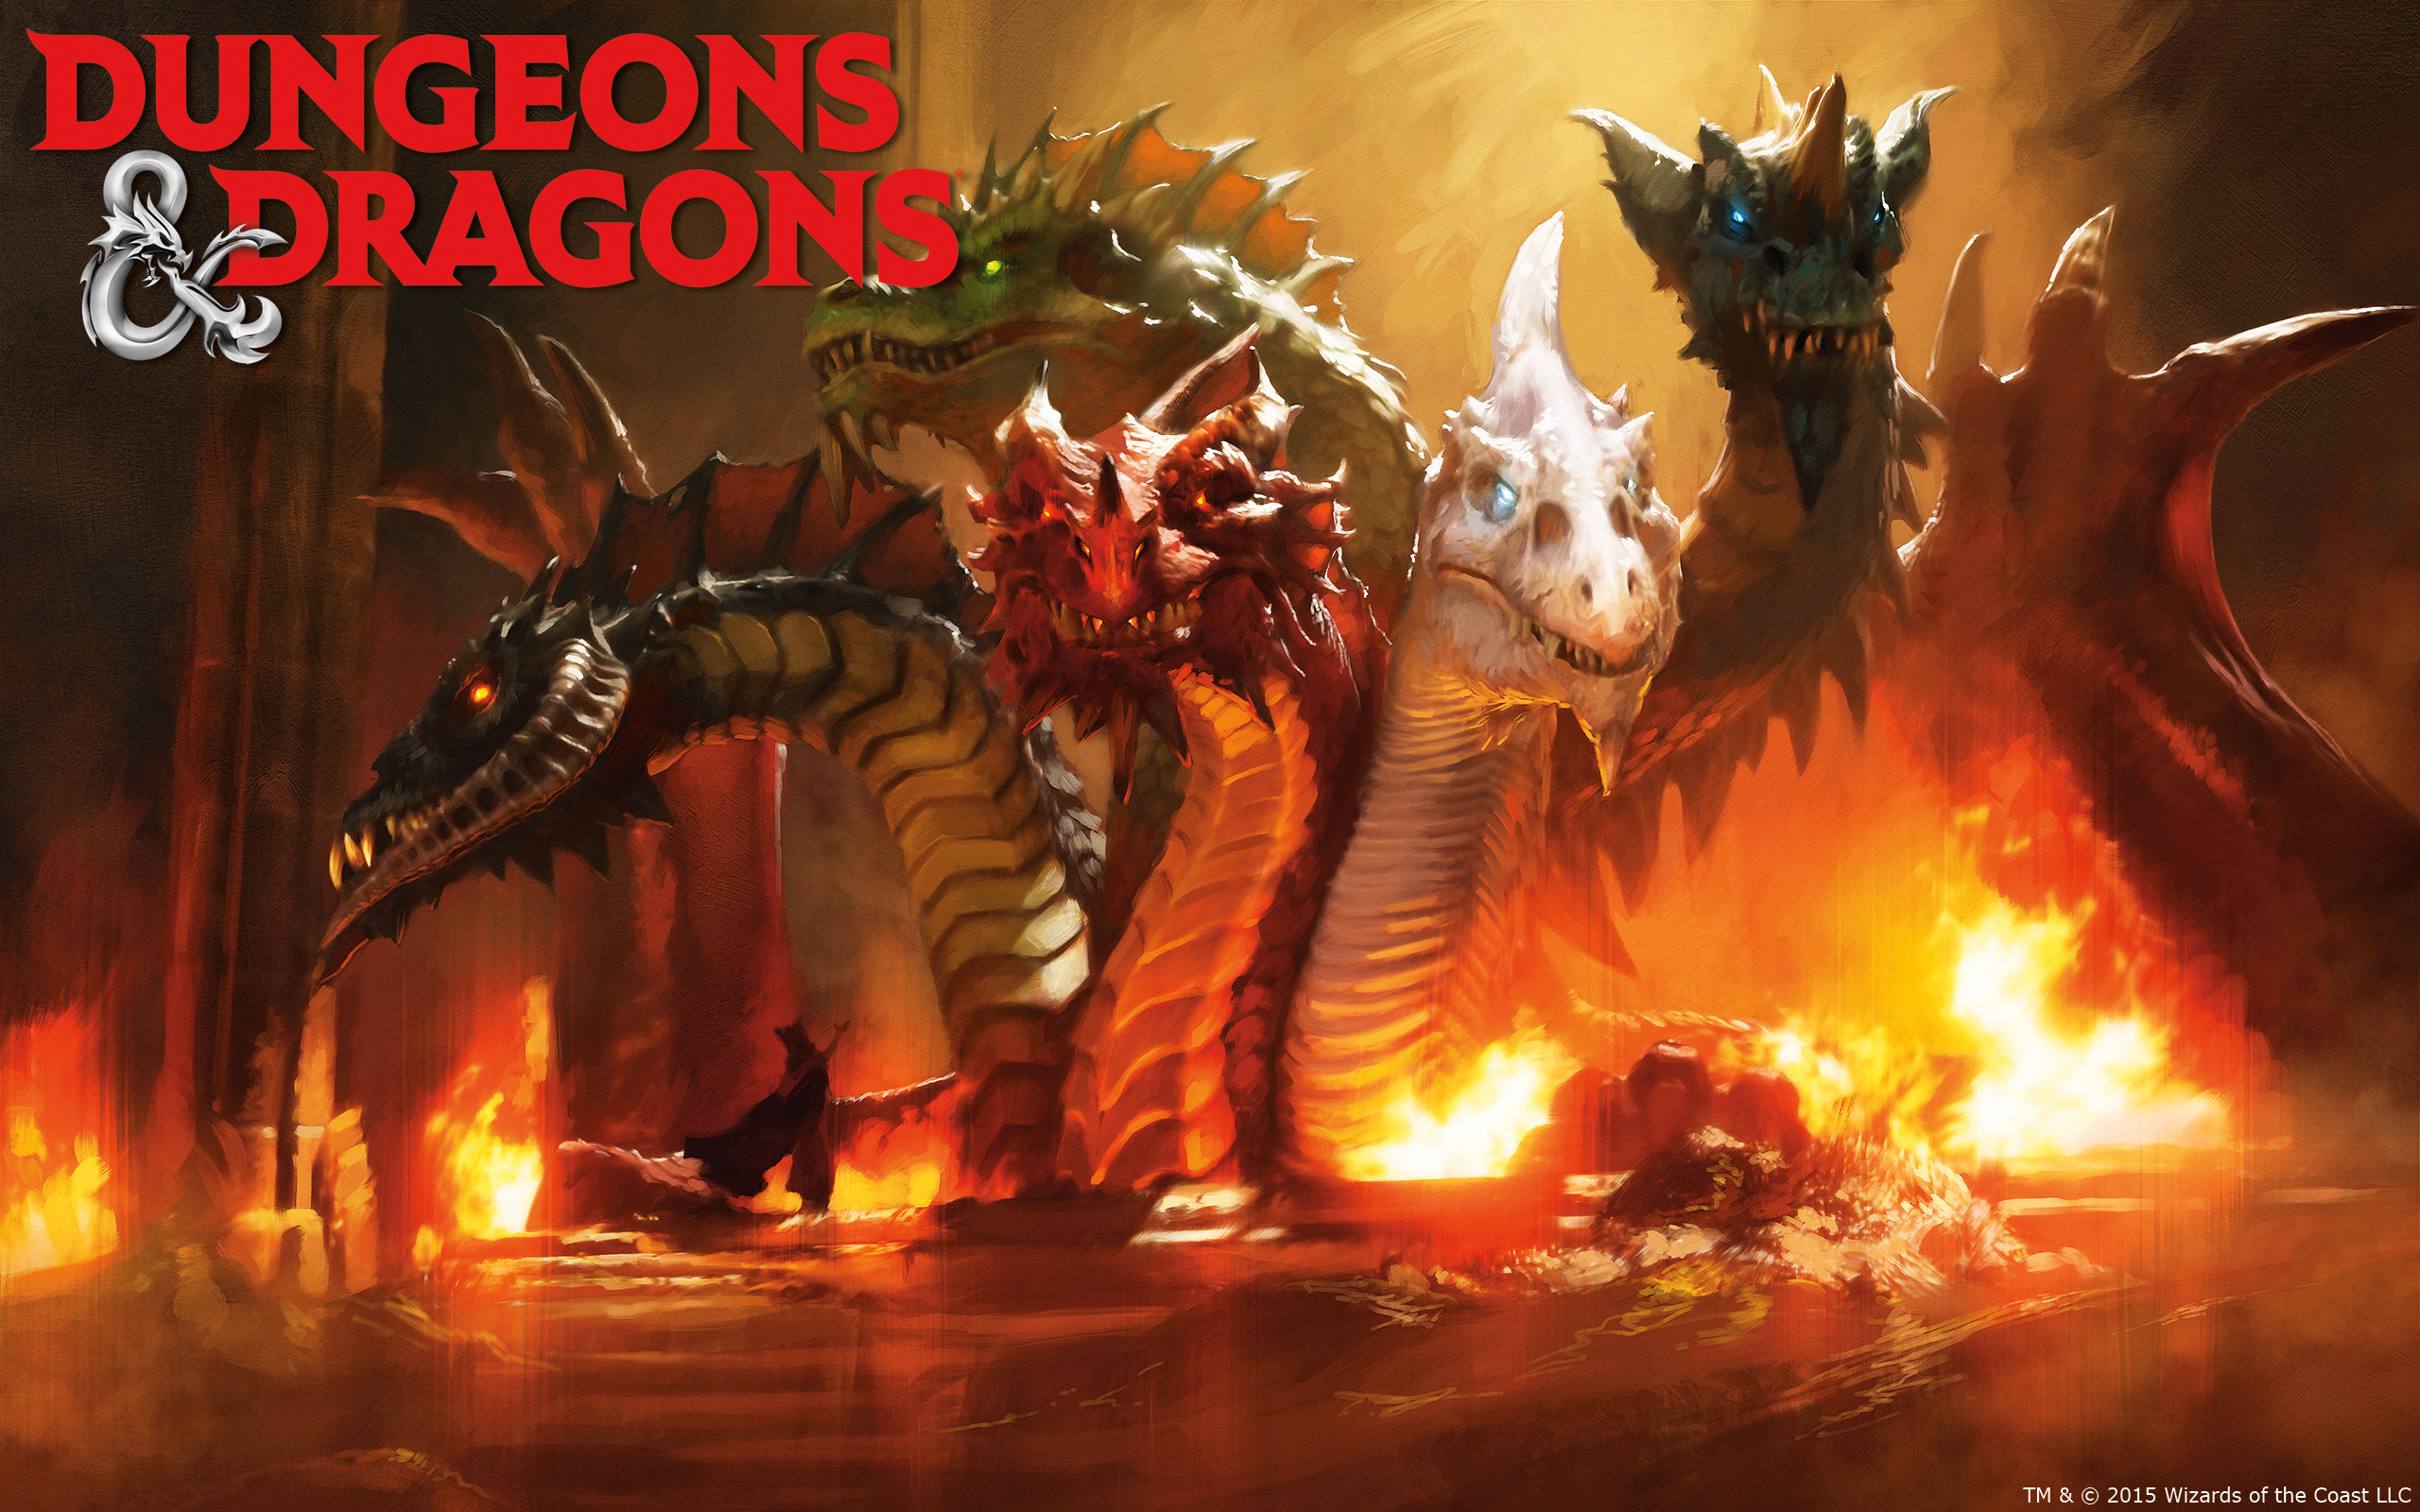 Dungeons And Dragons Wallpaper Hd